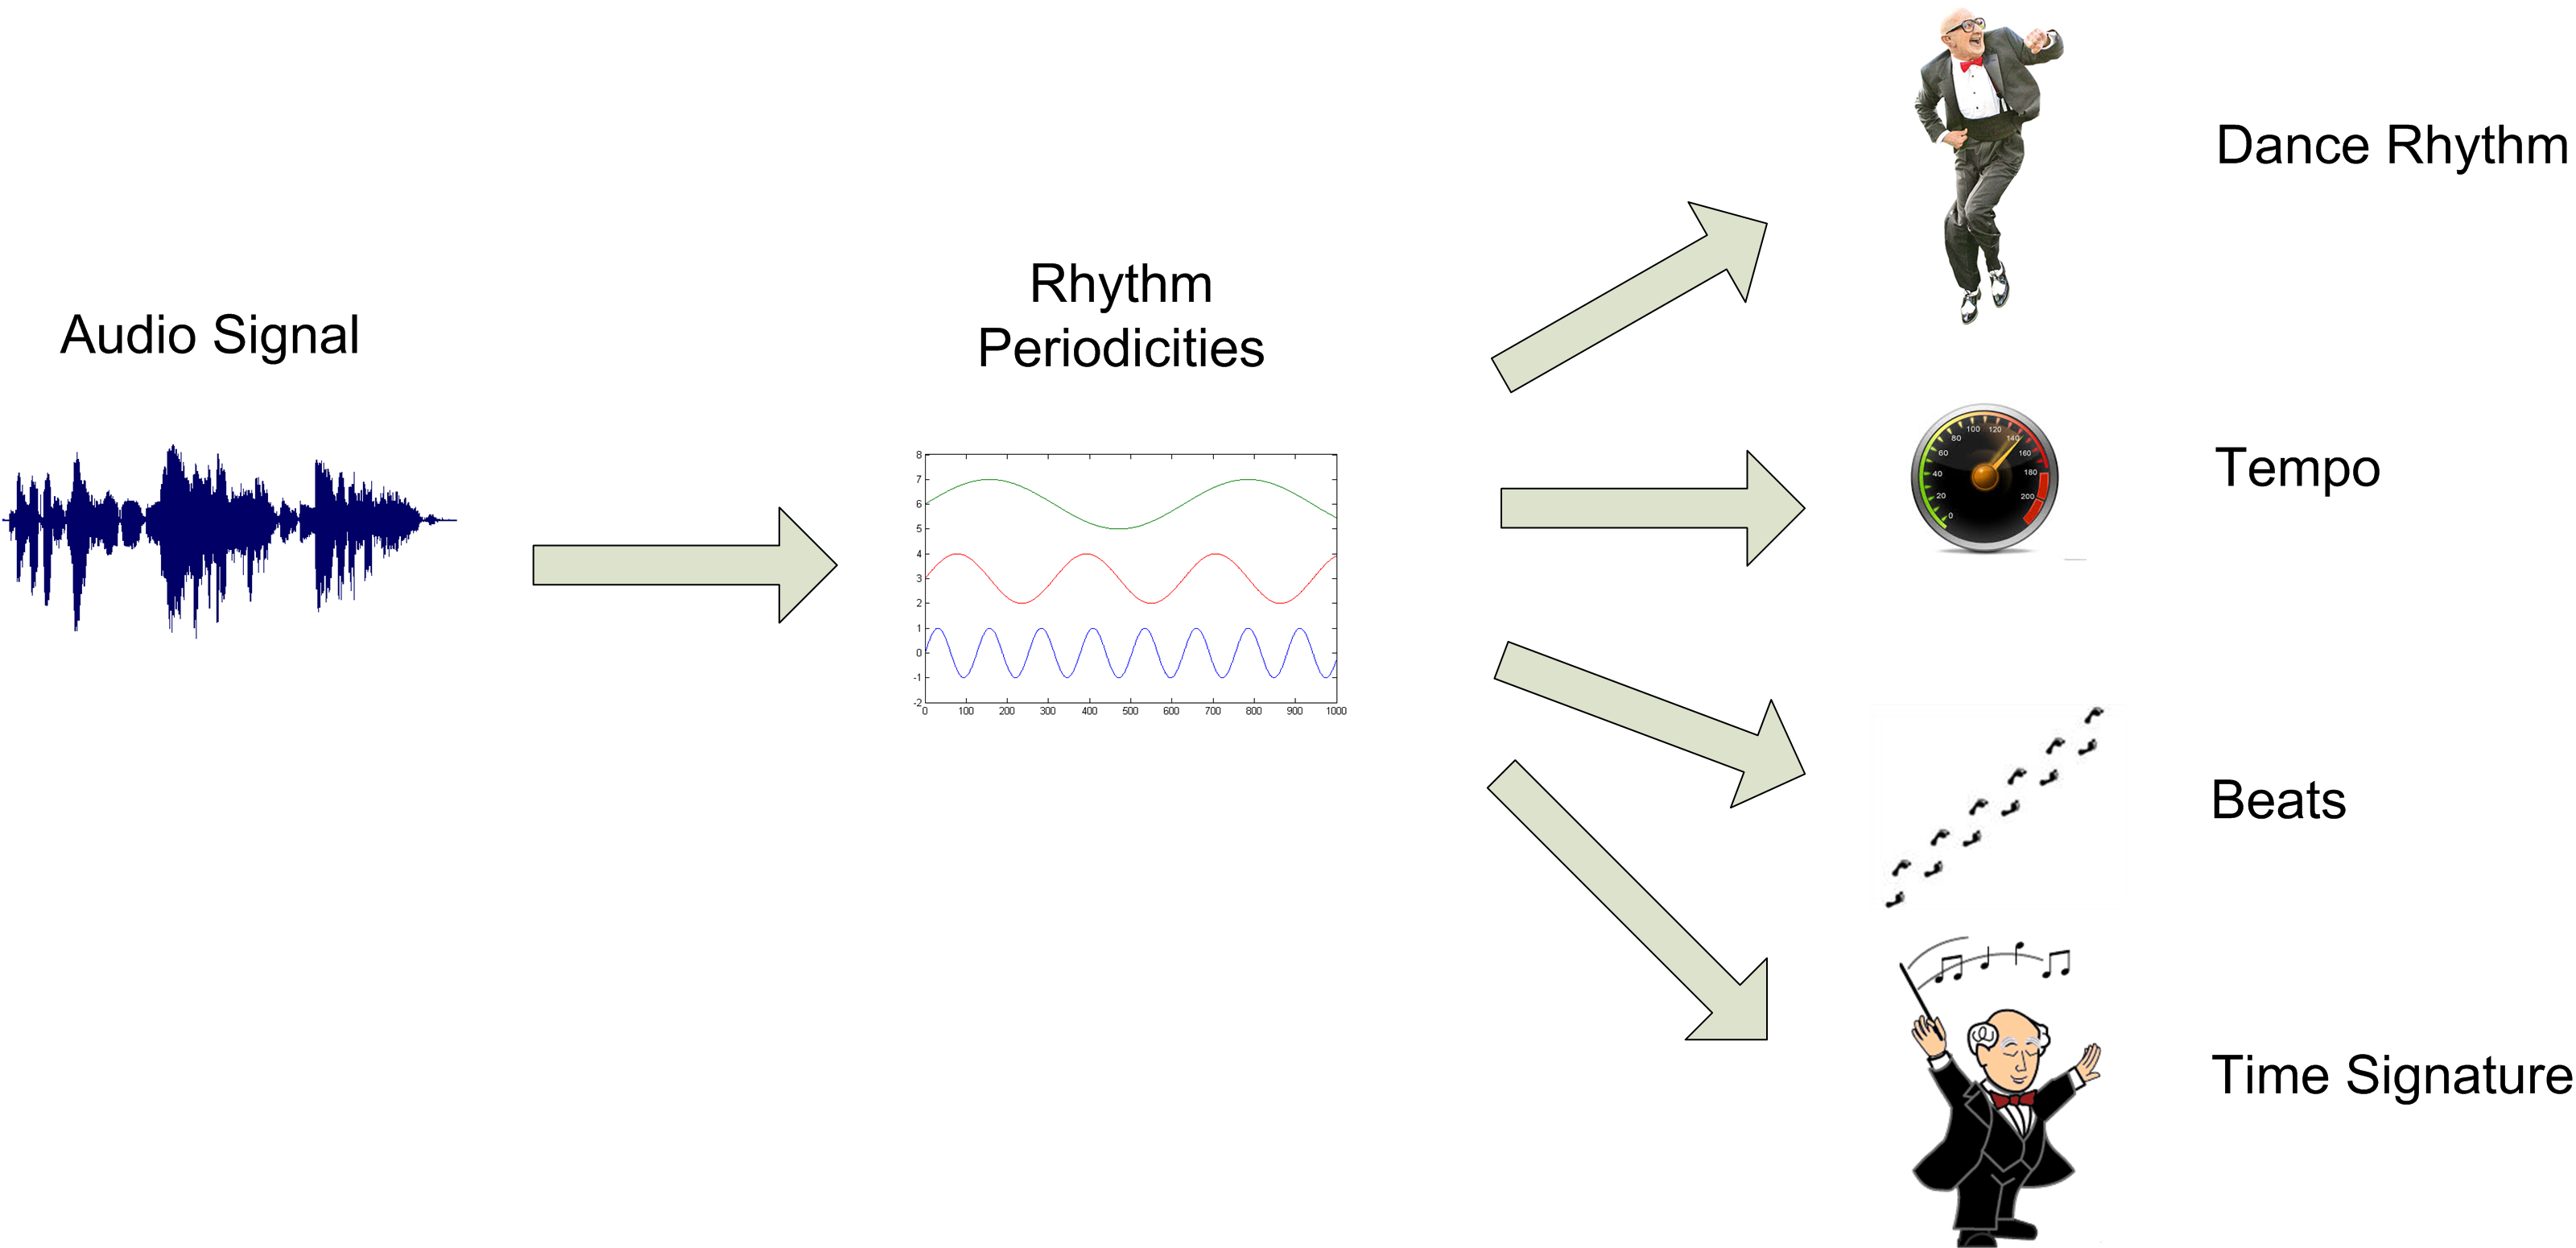 Rhythm analysis